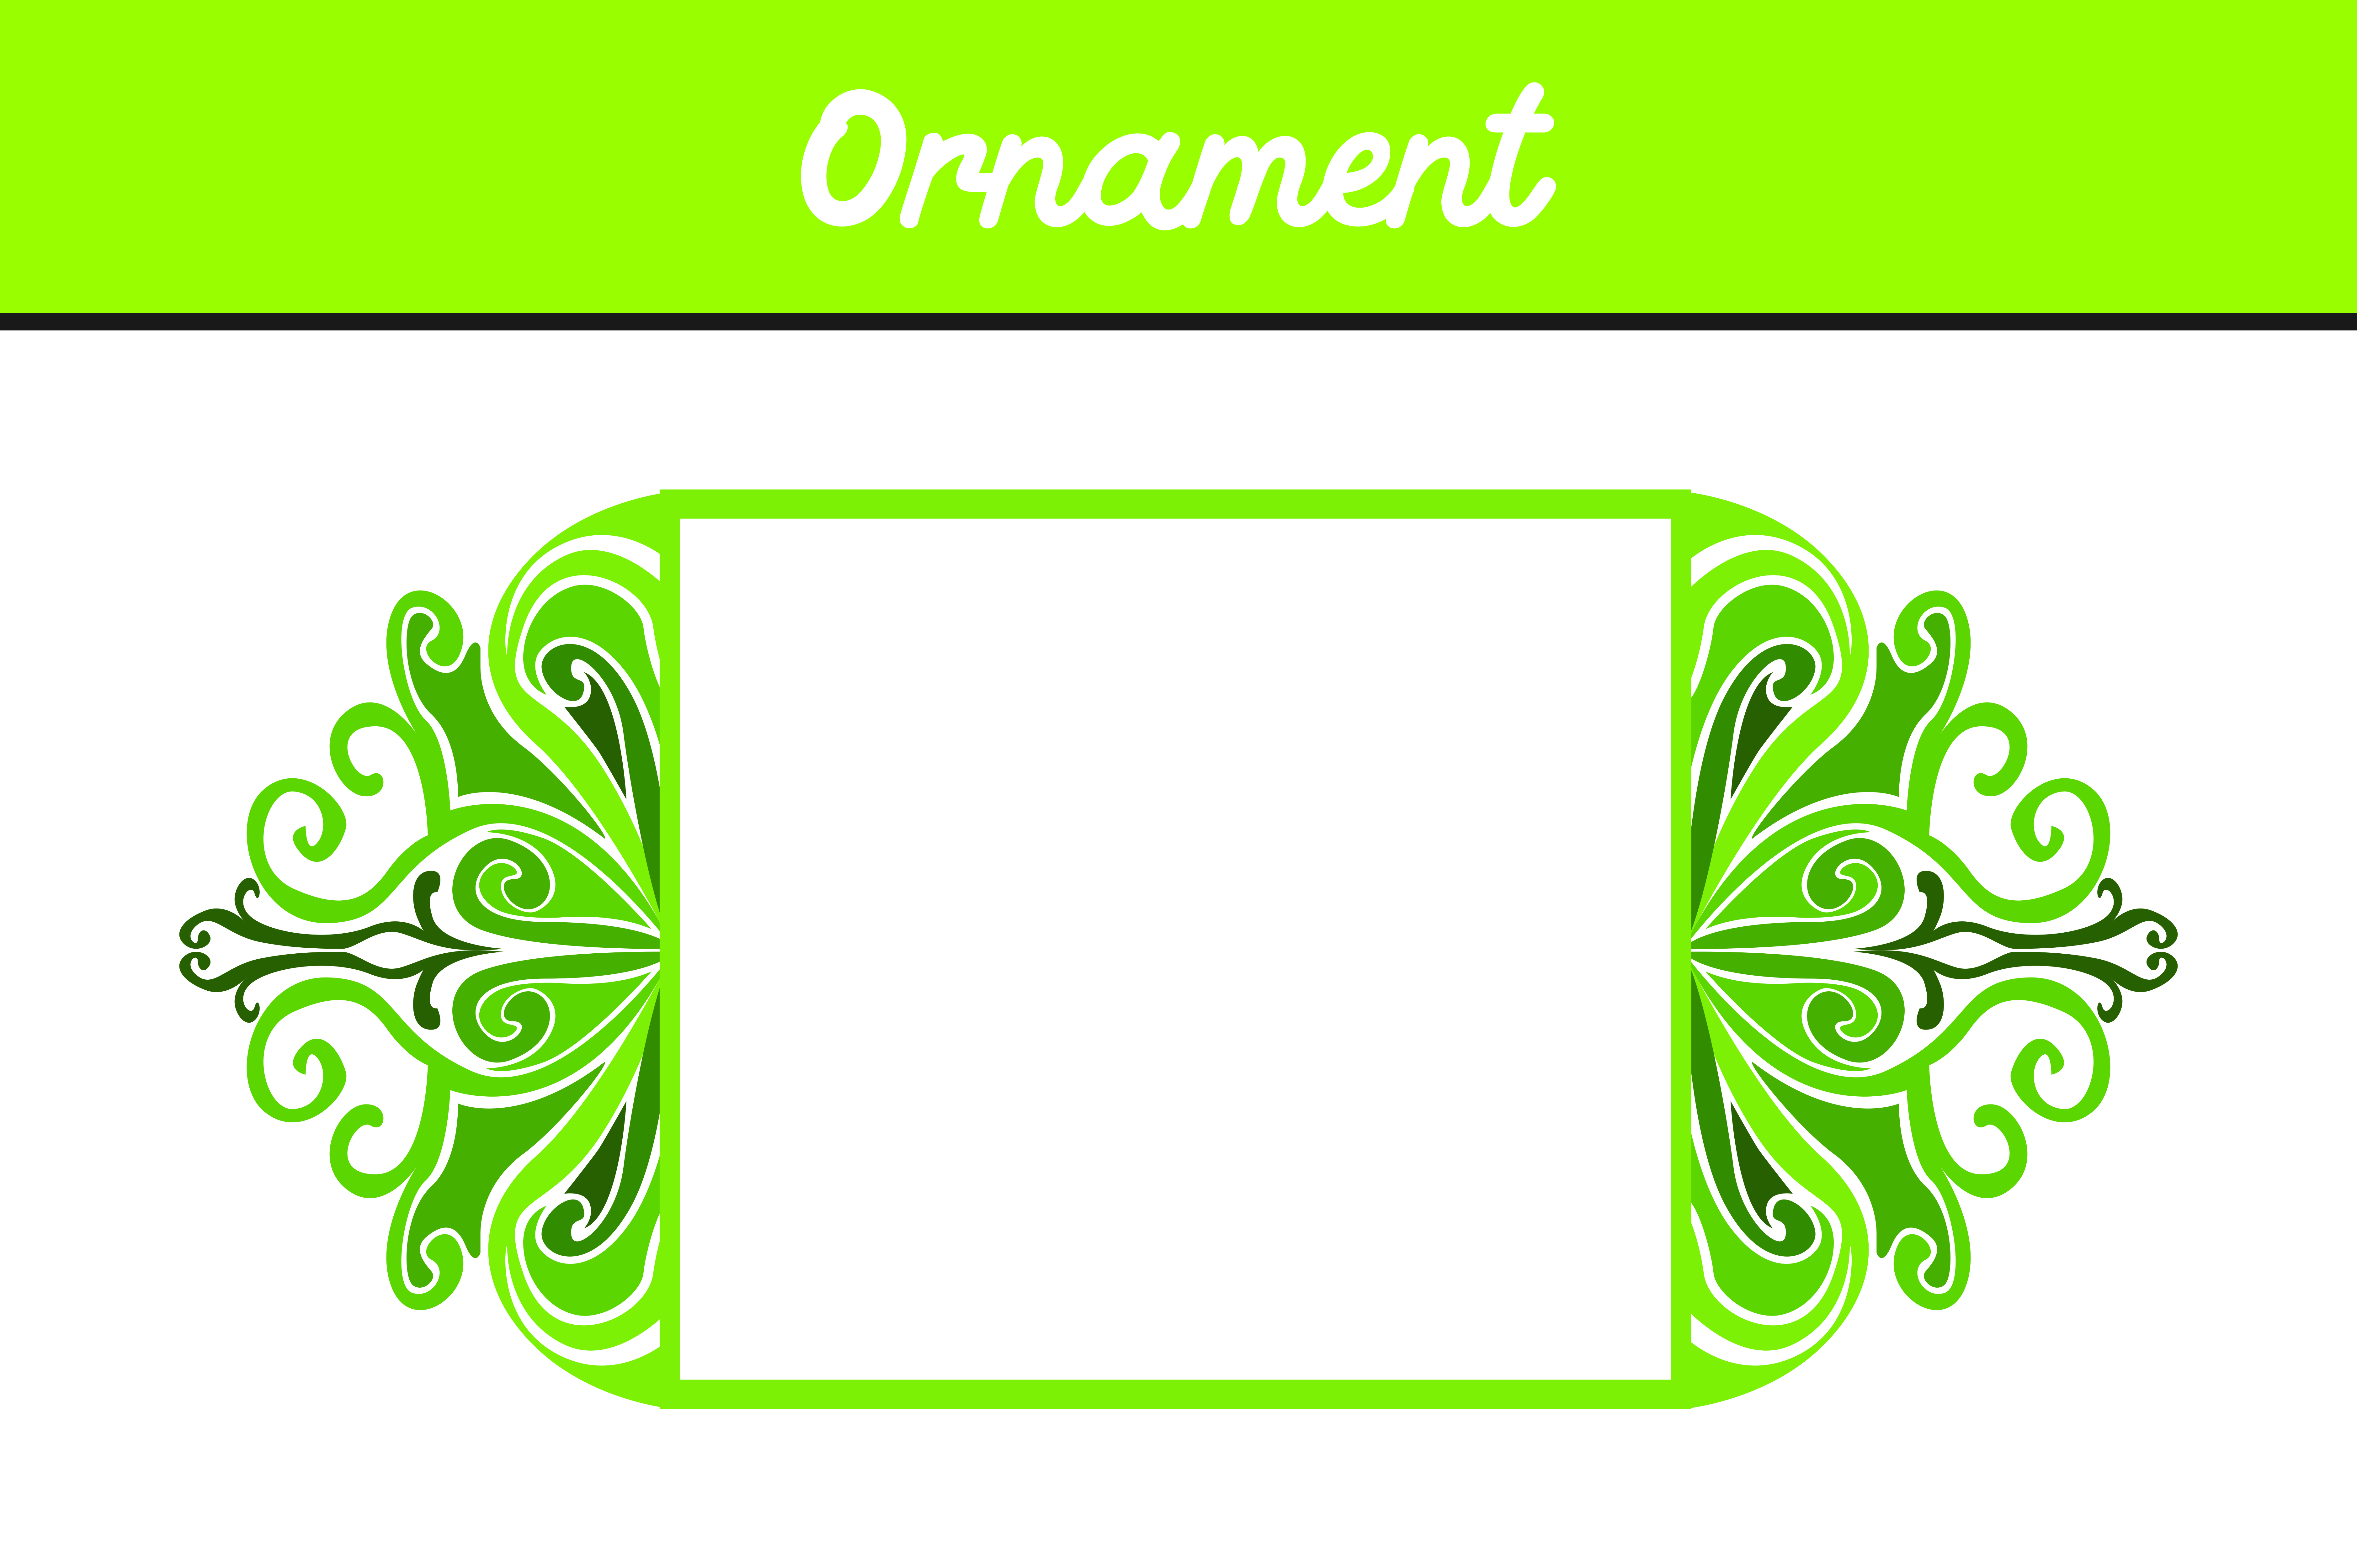 Download Free Green Border Frame Ornament Vector Graphic By Arief Sapta Adjie for Cricut Explore, Silhouette and other cutting machines.